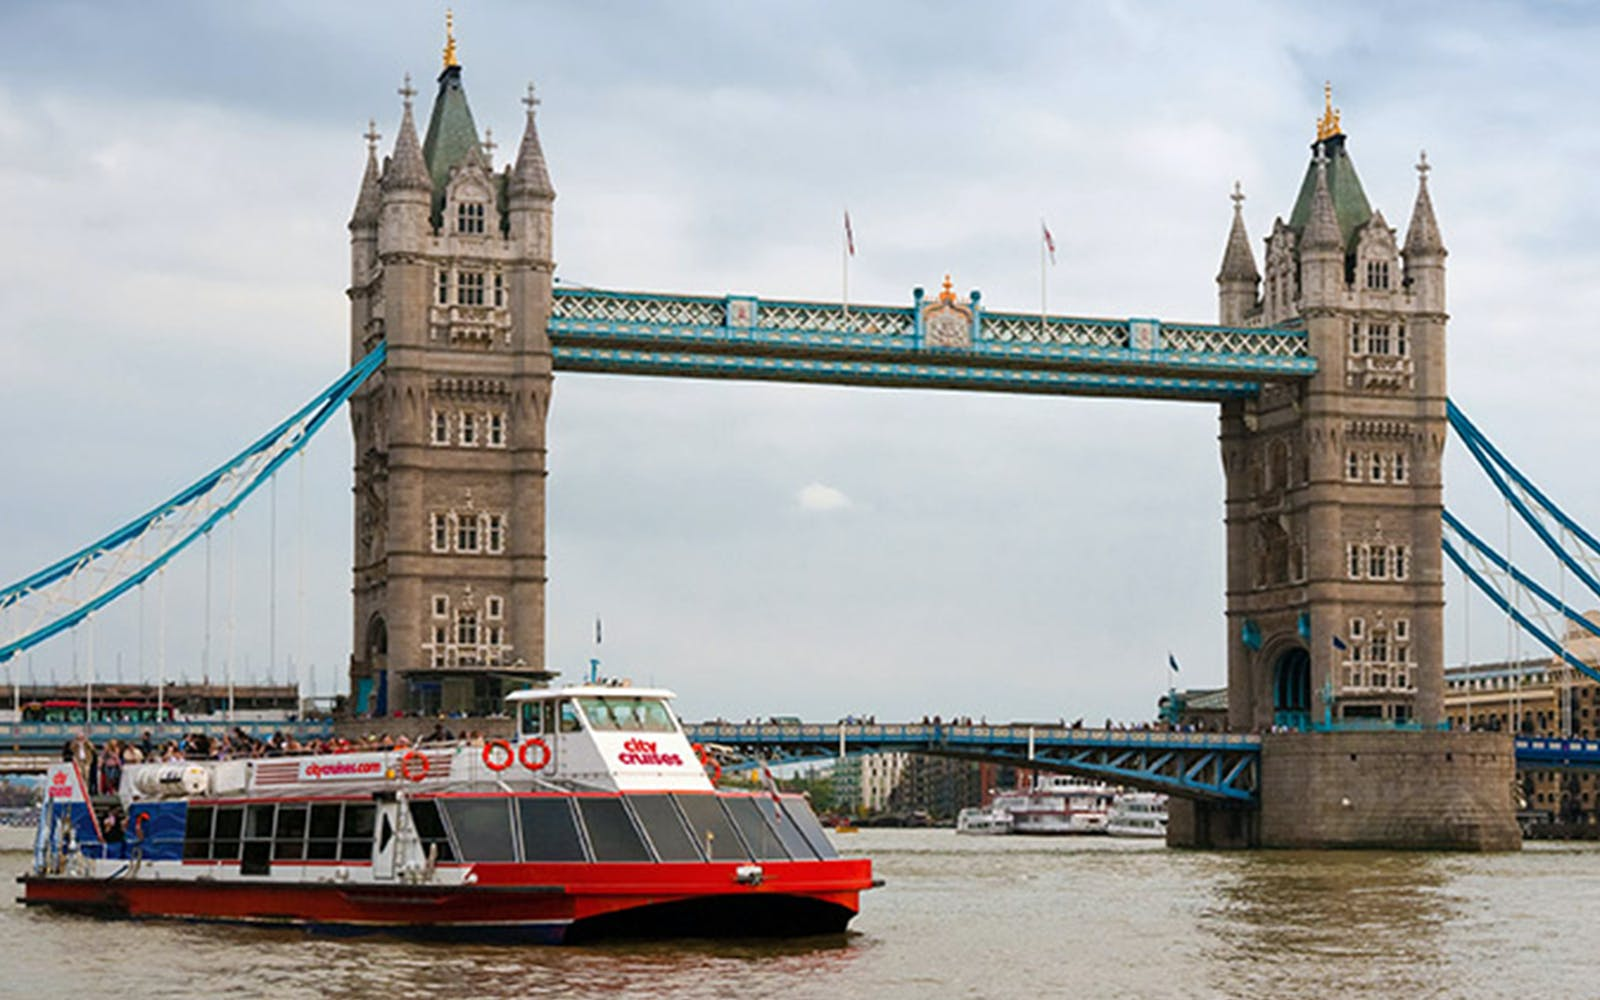 london explorer pass: 3, 5 & 7 attractions pass-4